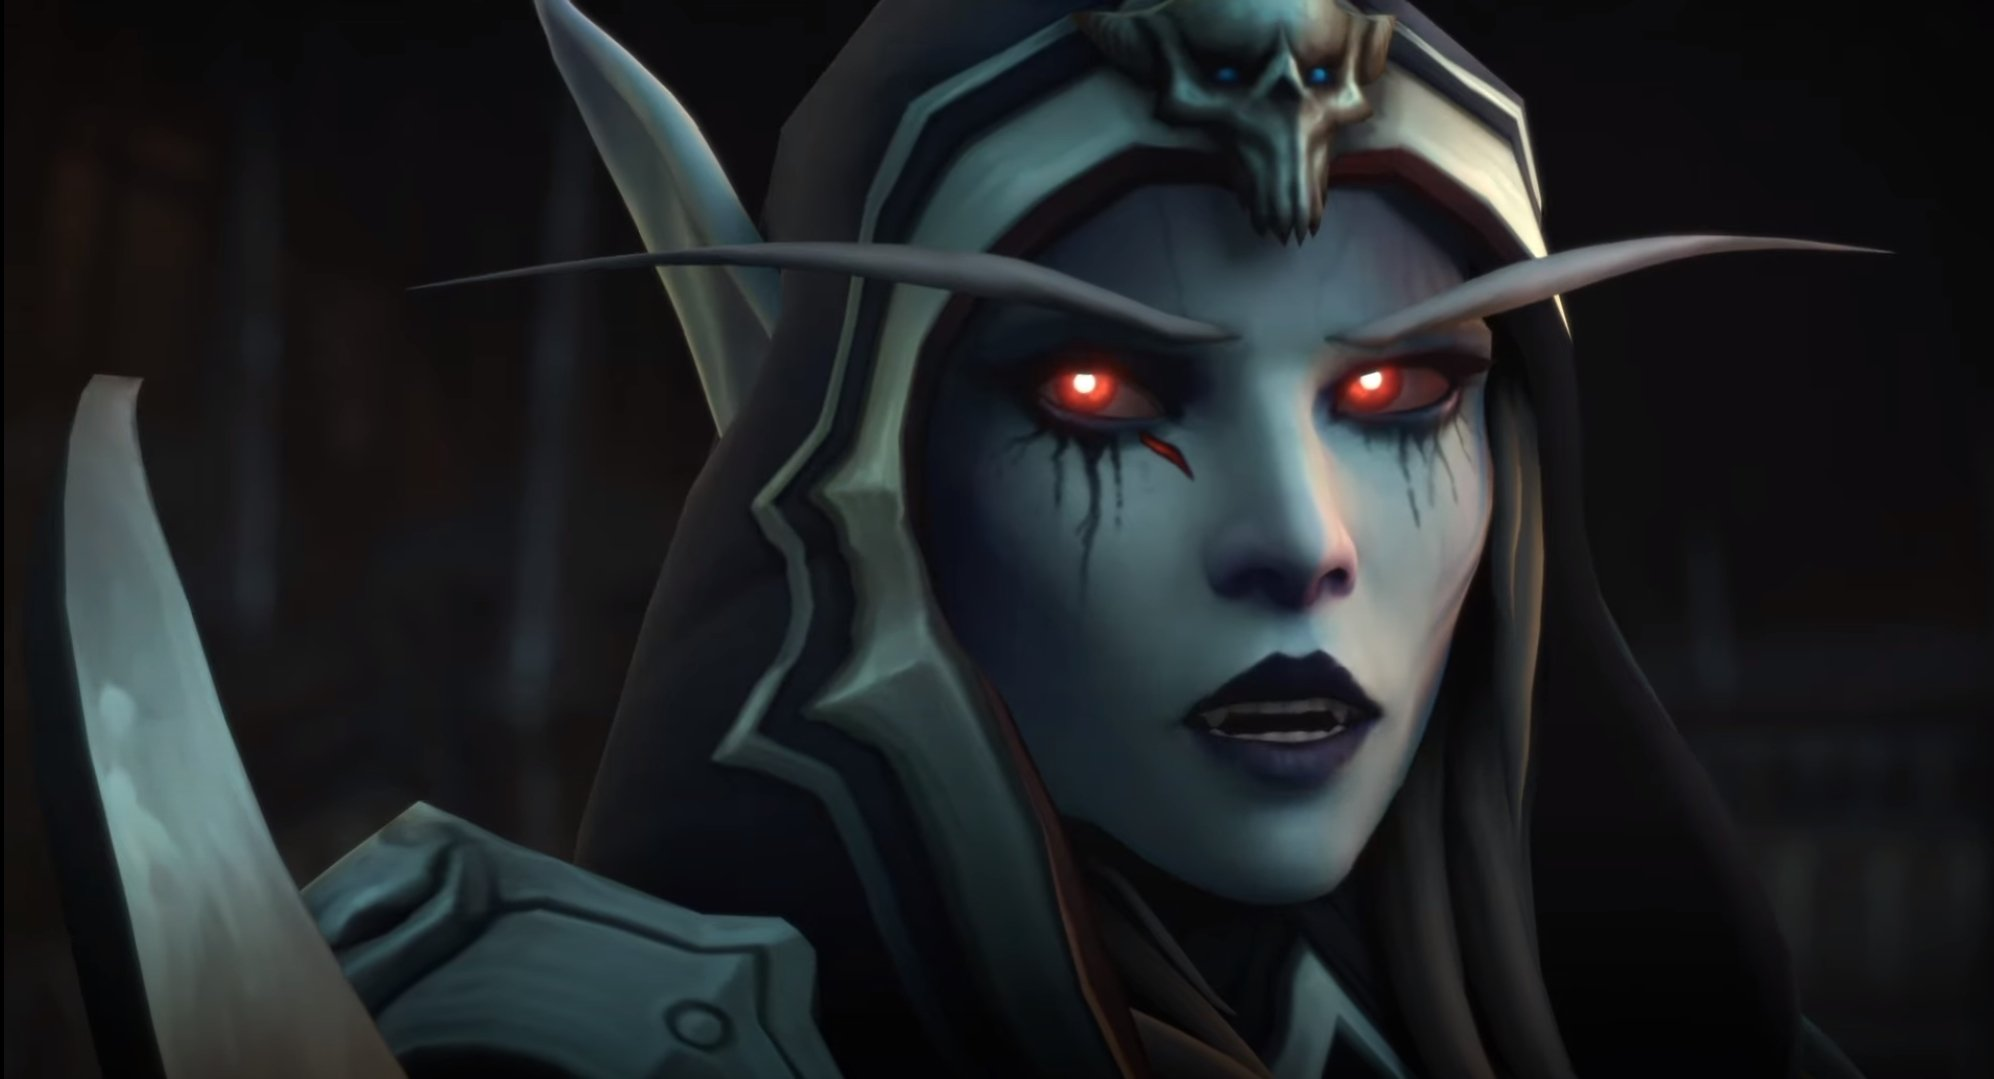 World Of Warcraft: Shadowlands Scourge Invasion Event Rares Have Their Spawn Interval Cut In Half!